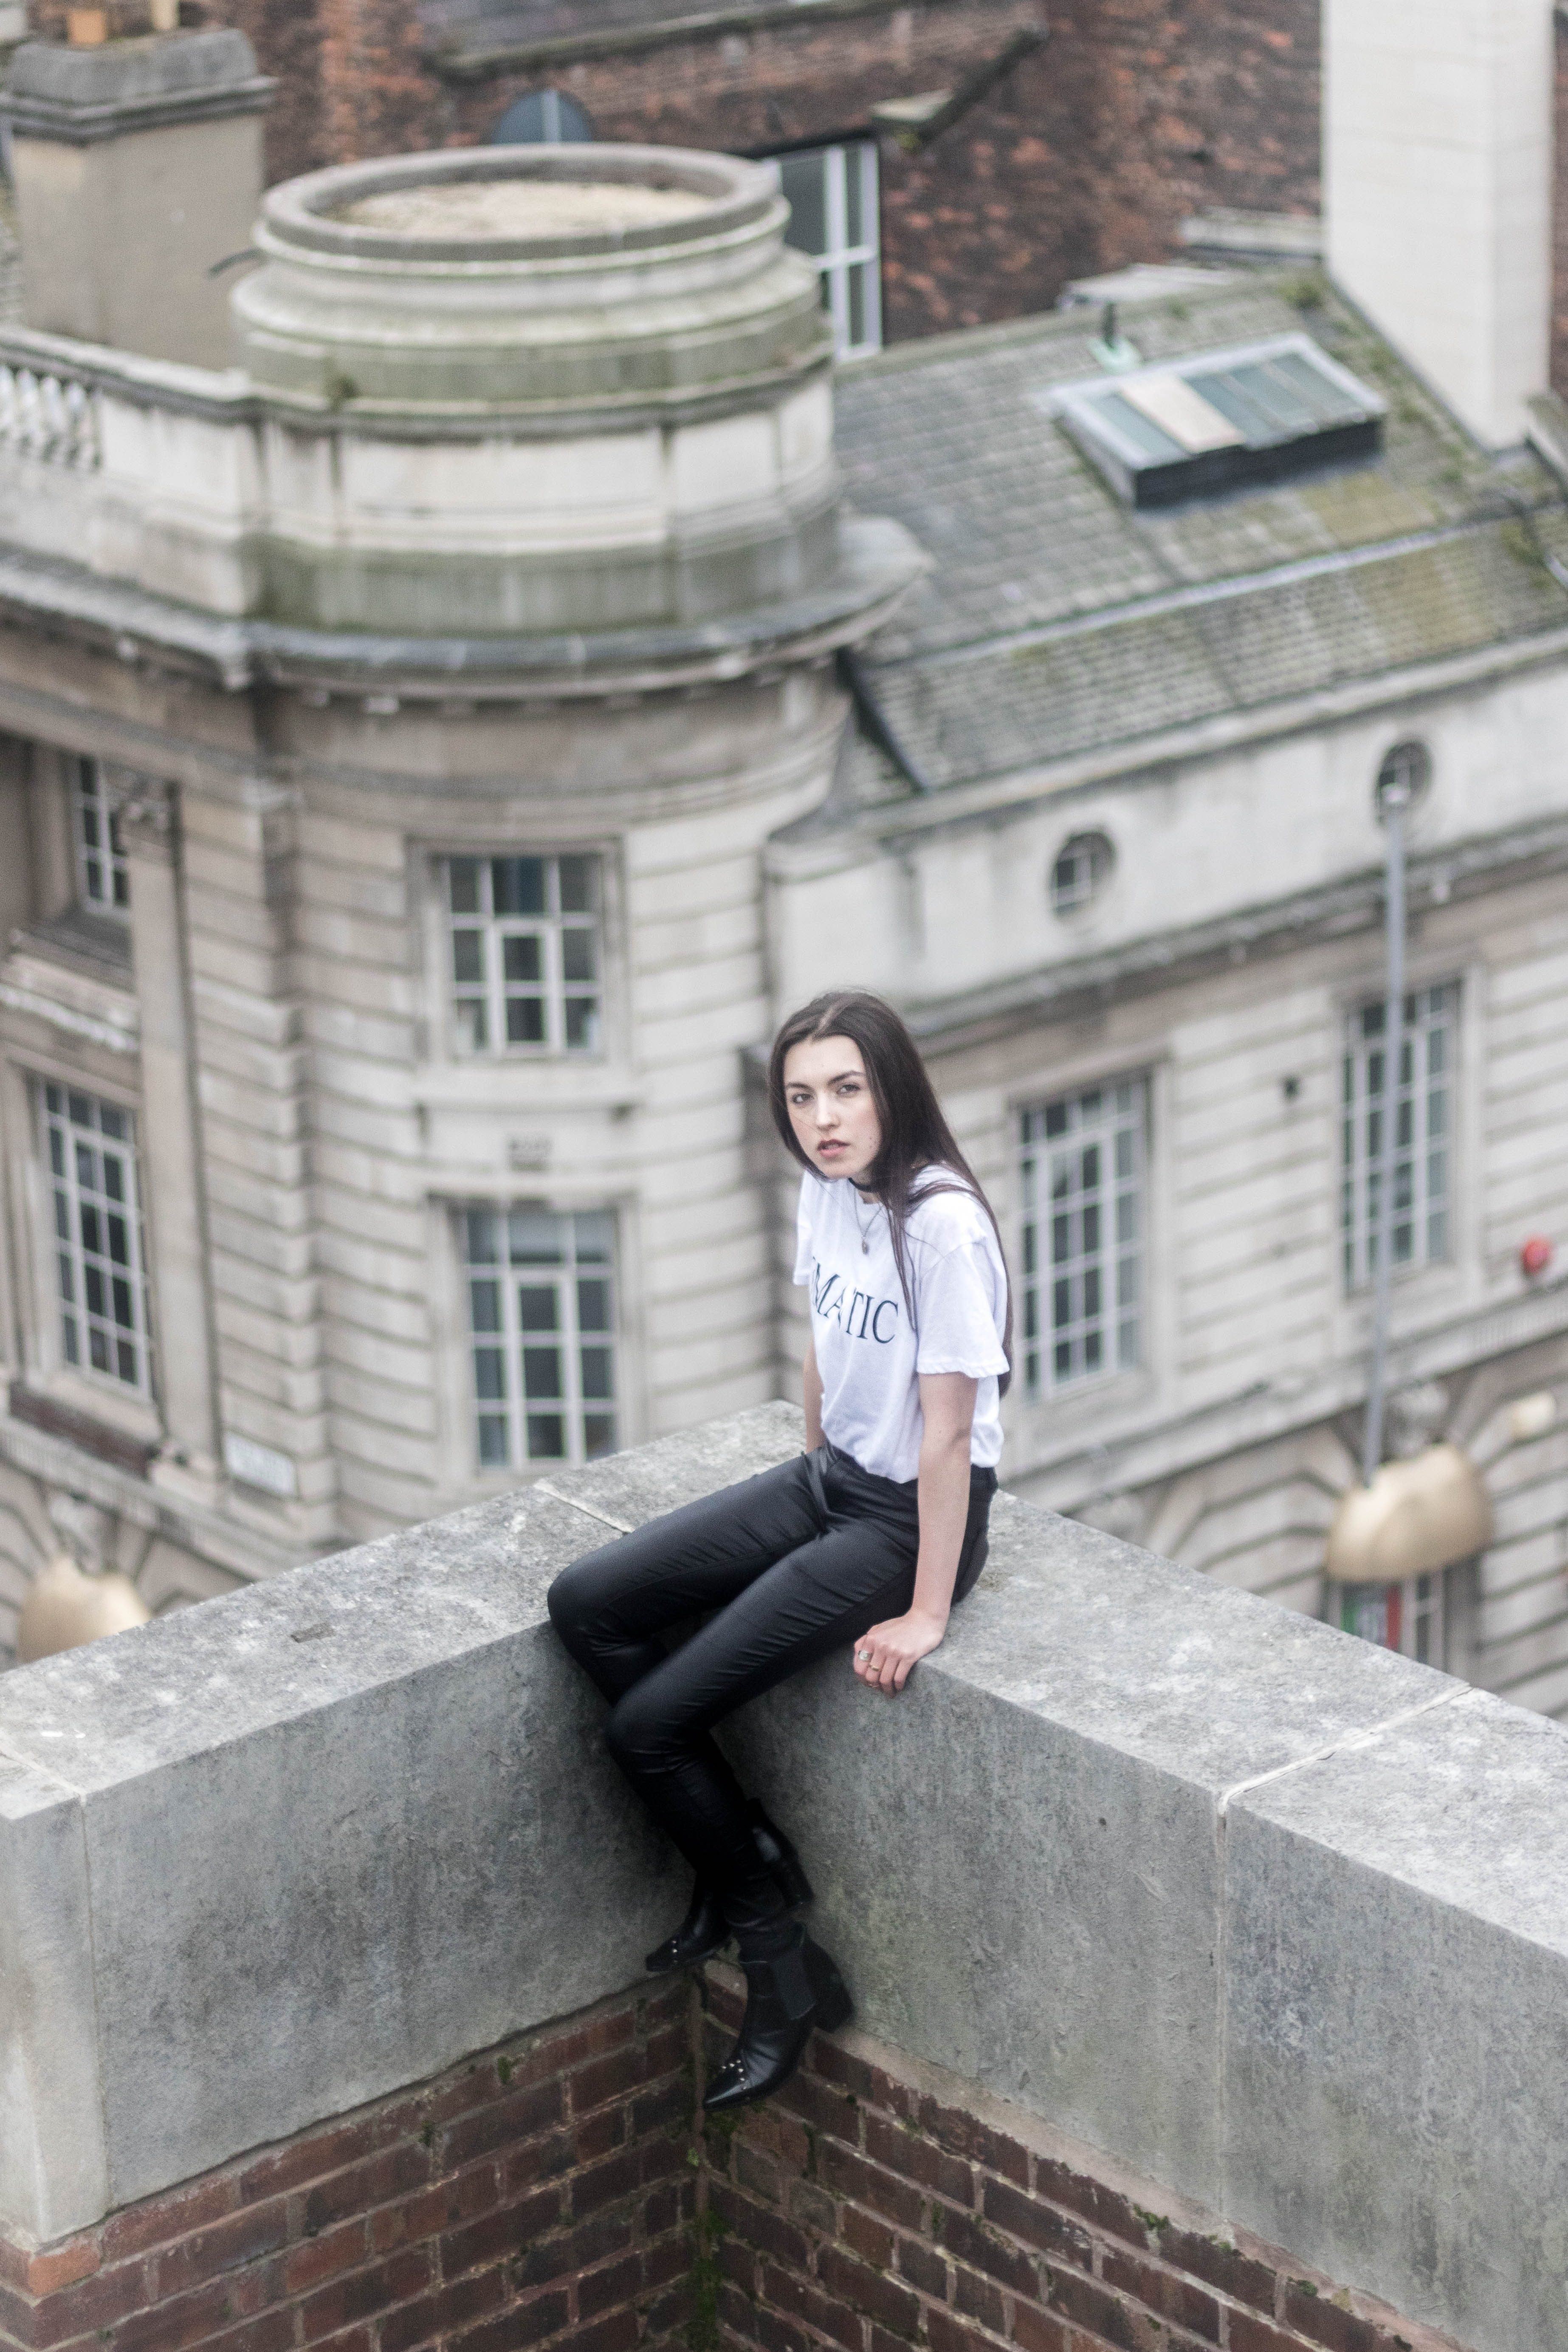 woman in white shirt sitting on top of building